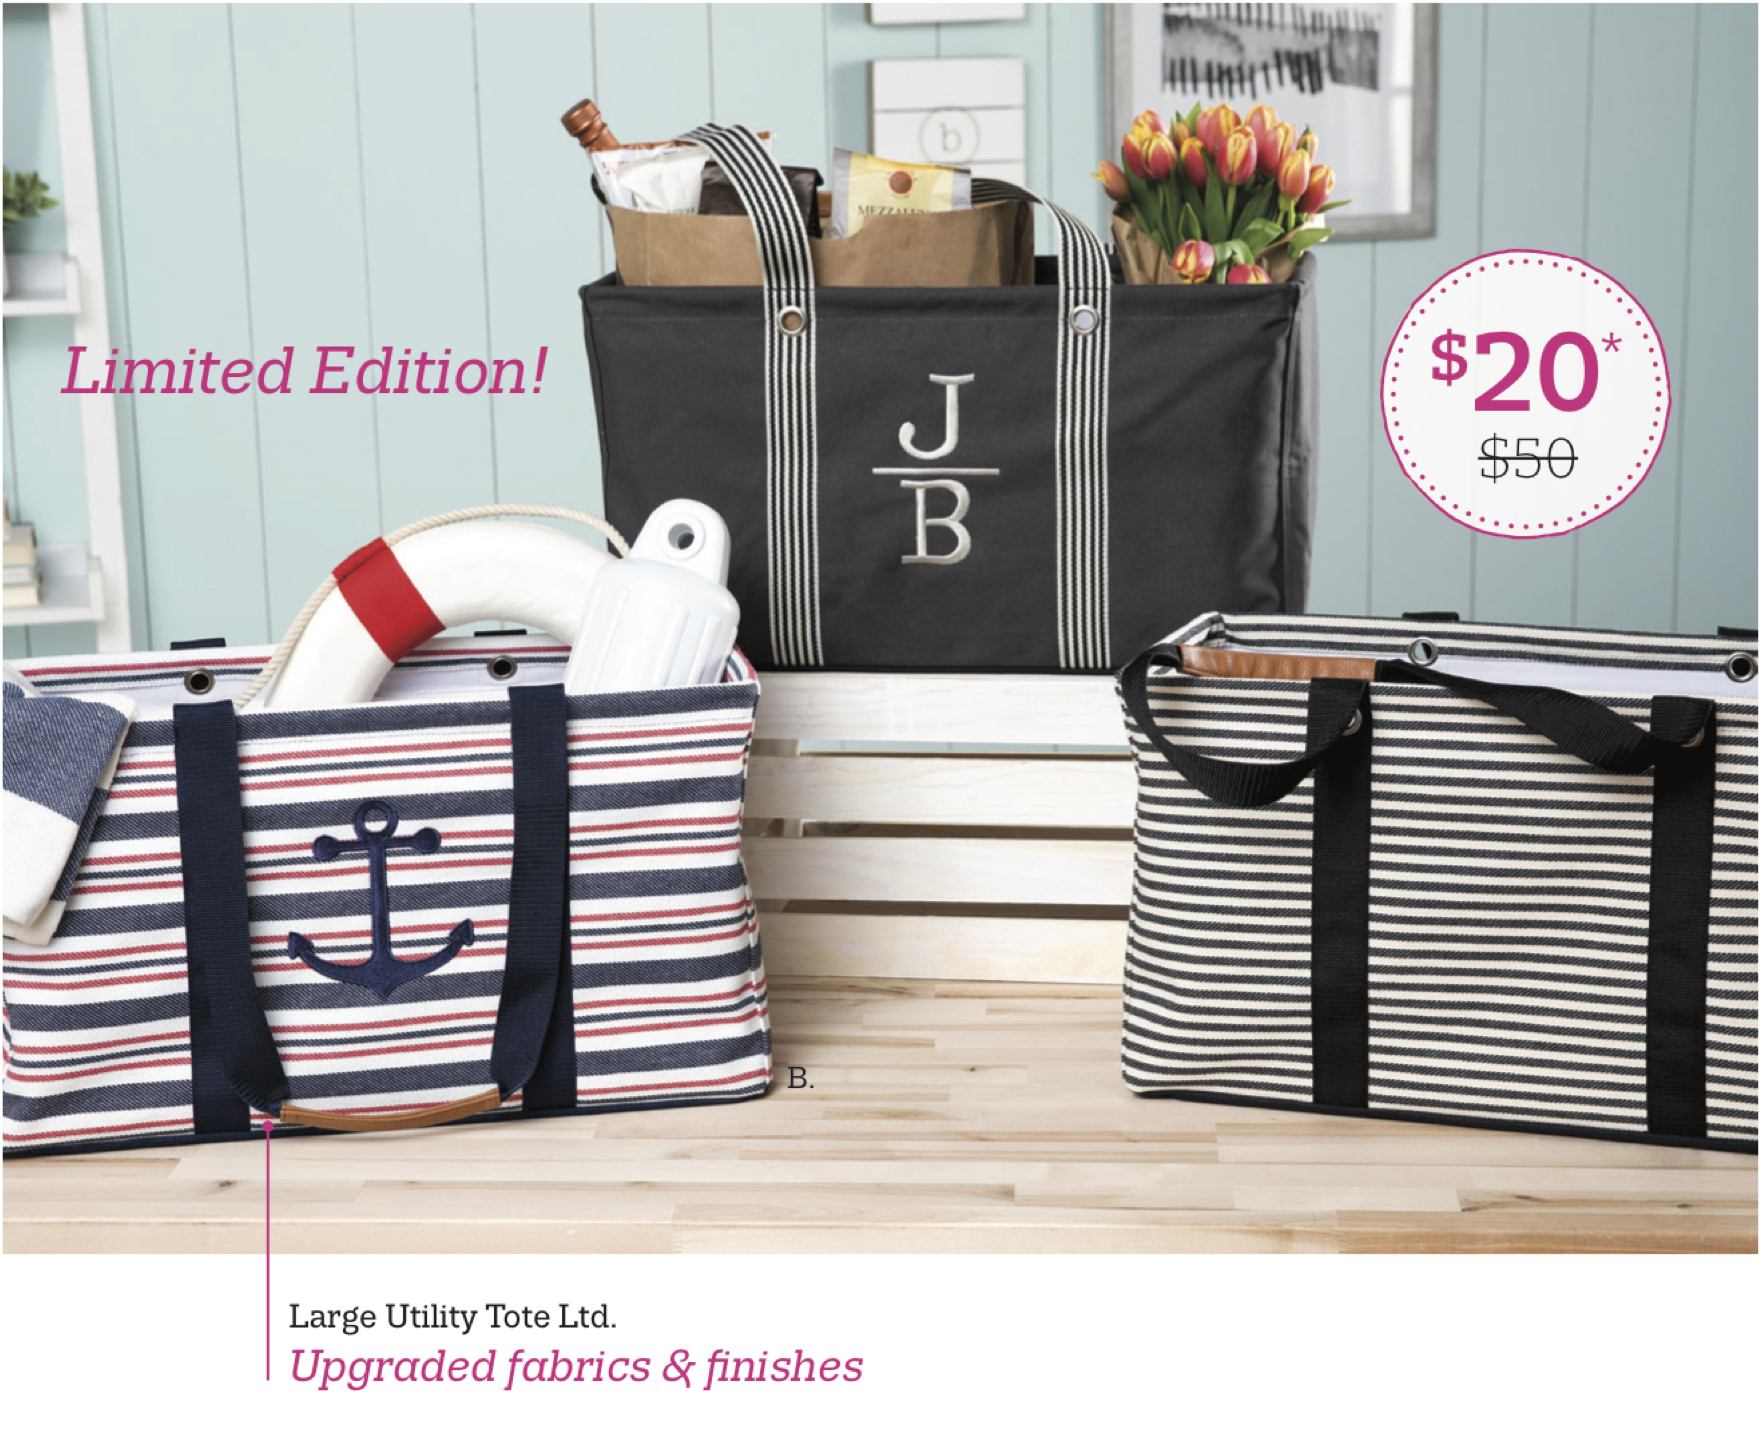 Thirty-One Gifts – Large Utility Tote Ltd